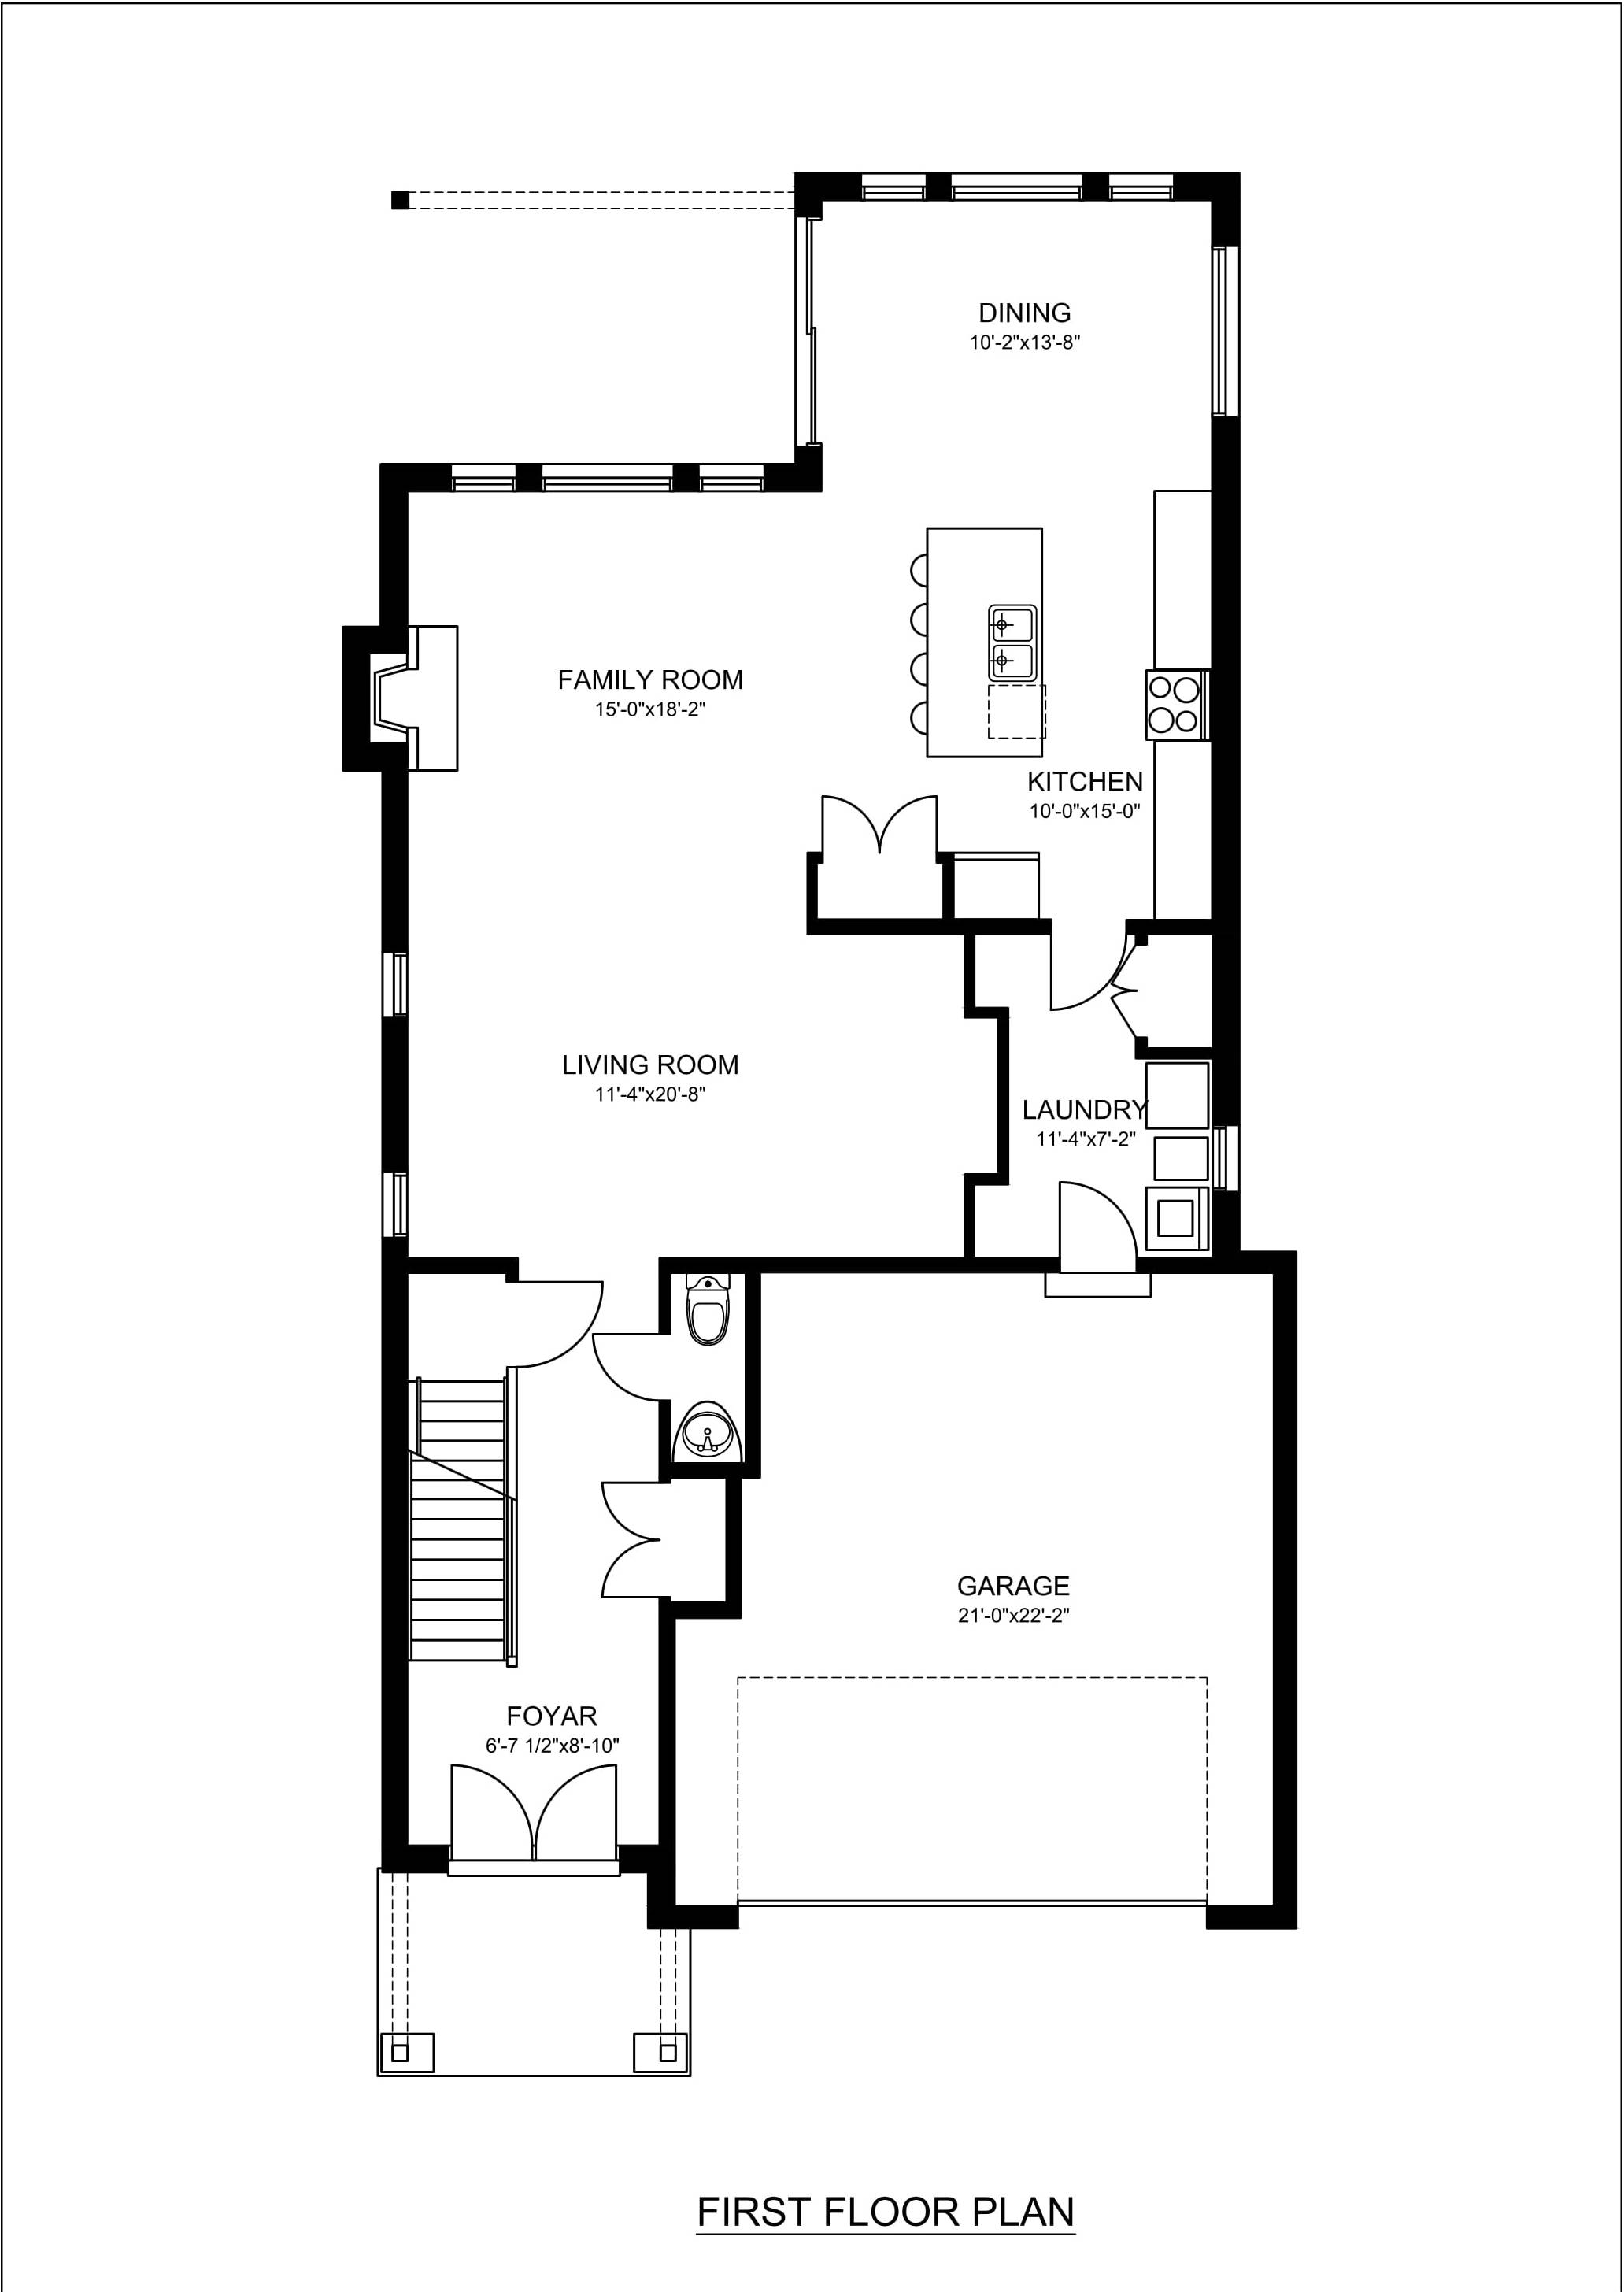 2d floor plan design rendering samples examples for Build a floor plan online